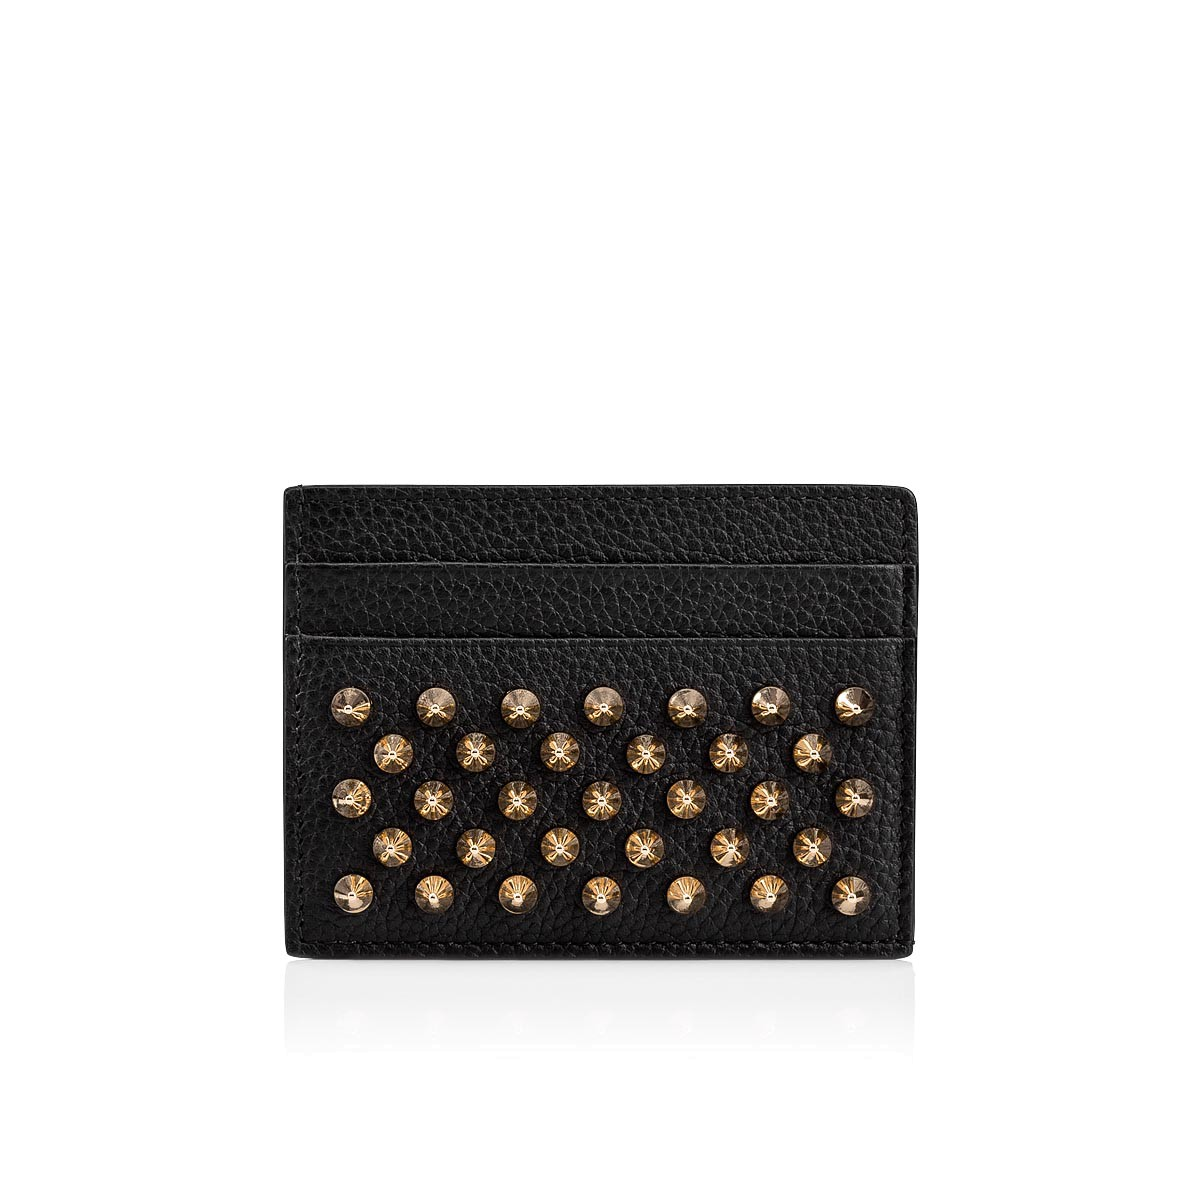 2e6aa6b2f68 Kios Card Holder Black/Gold Calfskin - Accessories - Christian Louboutin